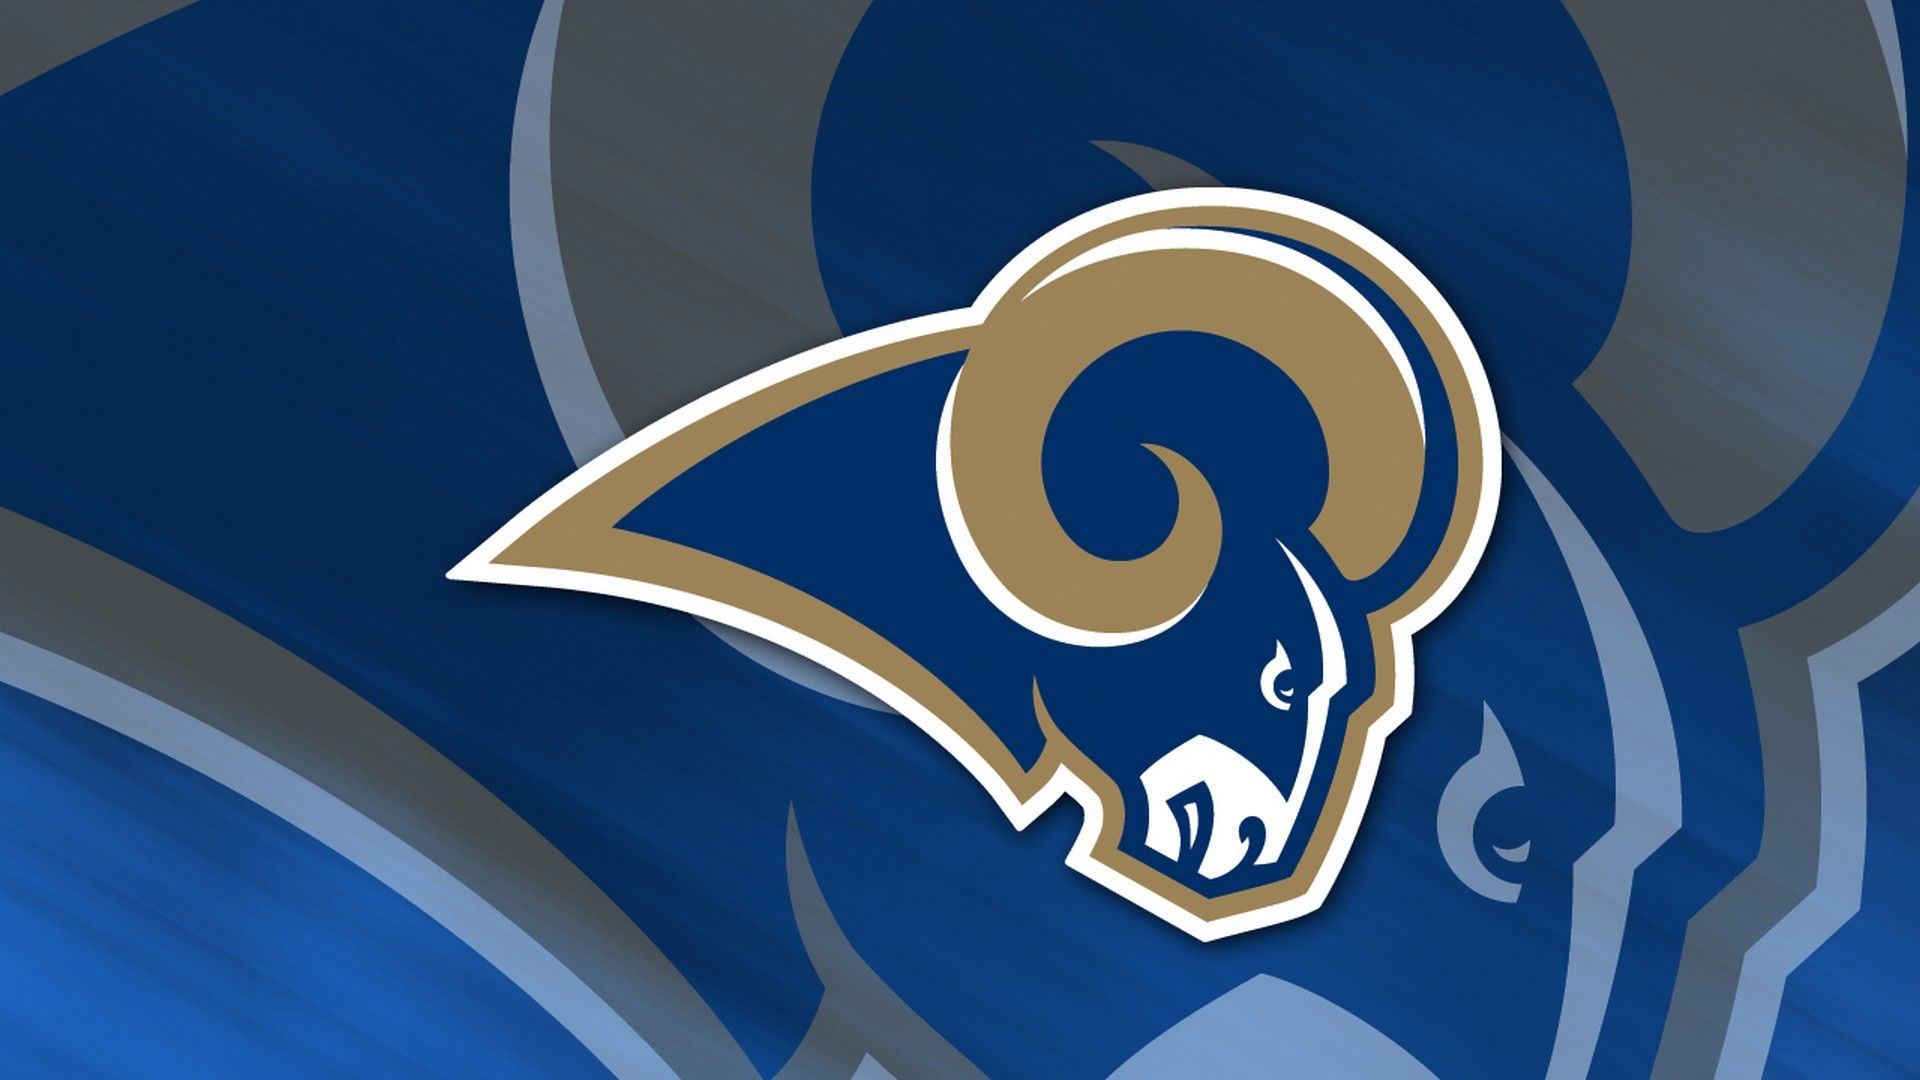 Hd Los Angeles Rams Backgrounds 2021 Nfl Football Wallpapers St Louis Rams Nfl Football Wallpaper Nfl Teams Logos